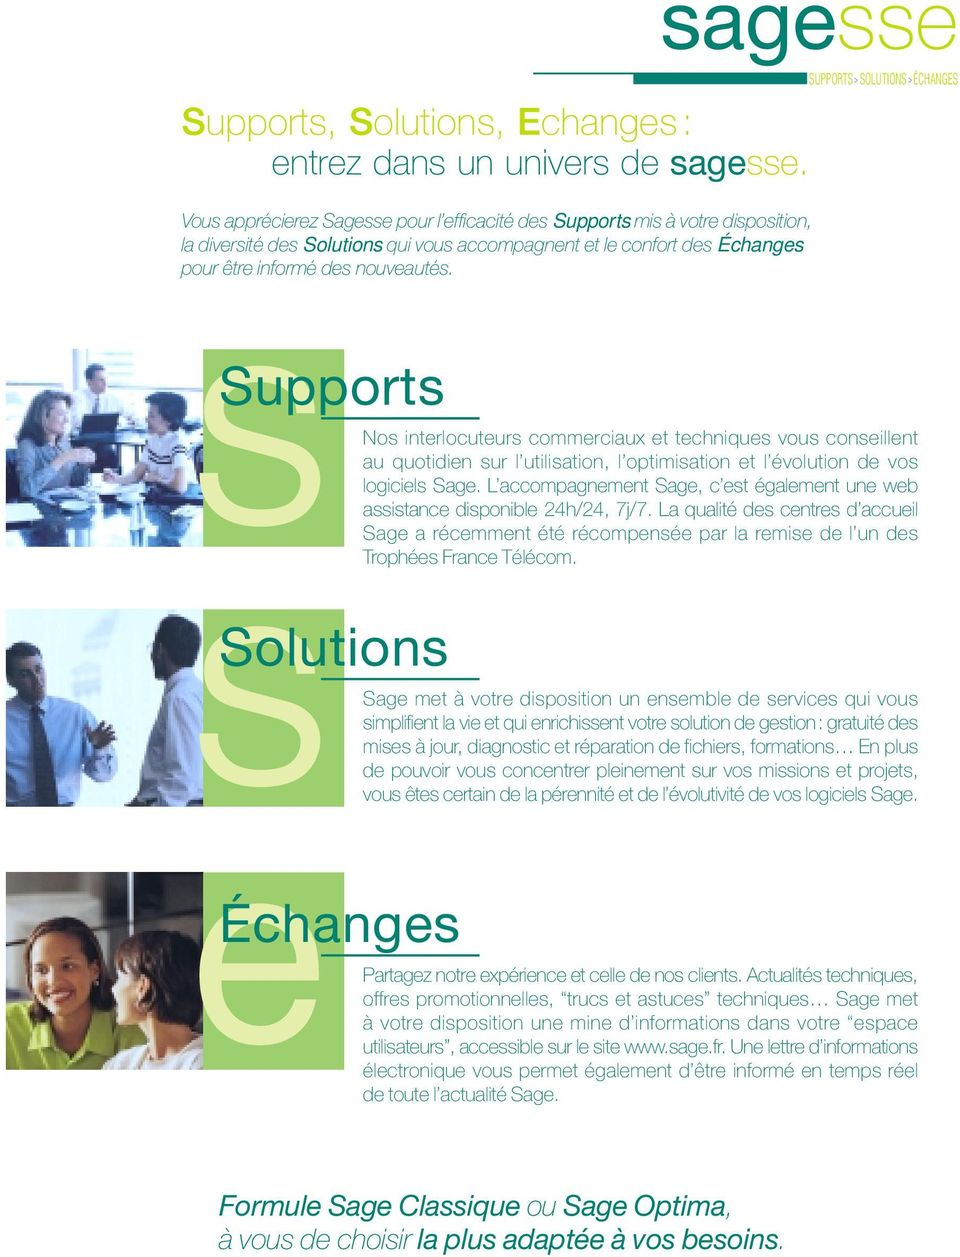 SUPPORTS > SOLUTIONS > ÉCHANGES S Supports S Solutions eéchanges Nos interlocuteurs commerciaux et techniques vous conseillent au quotidien sur l utilisation, l optimisation et l évolution de vos